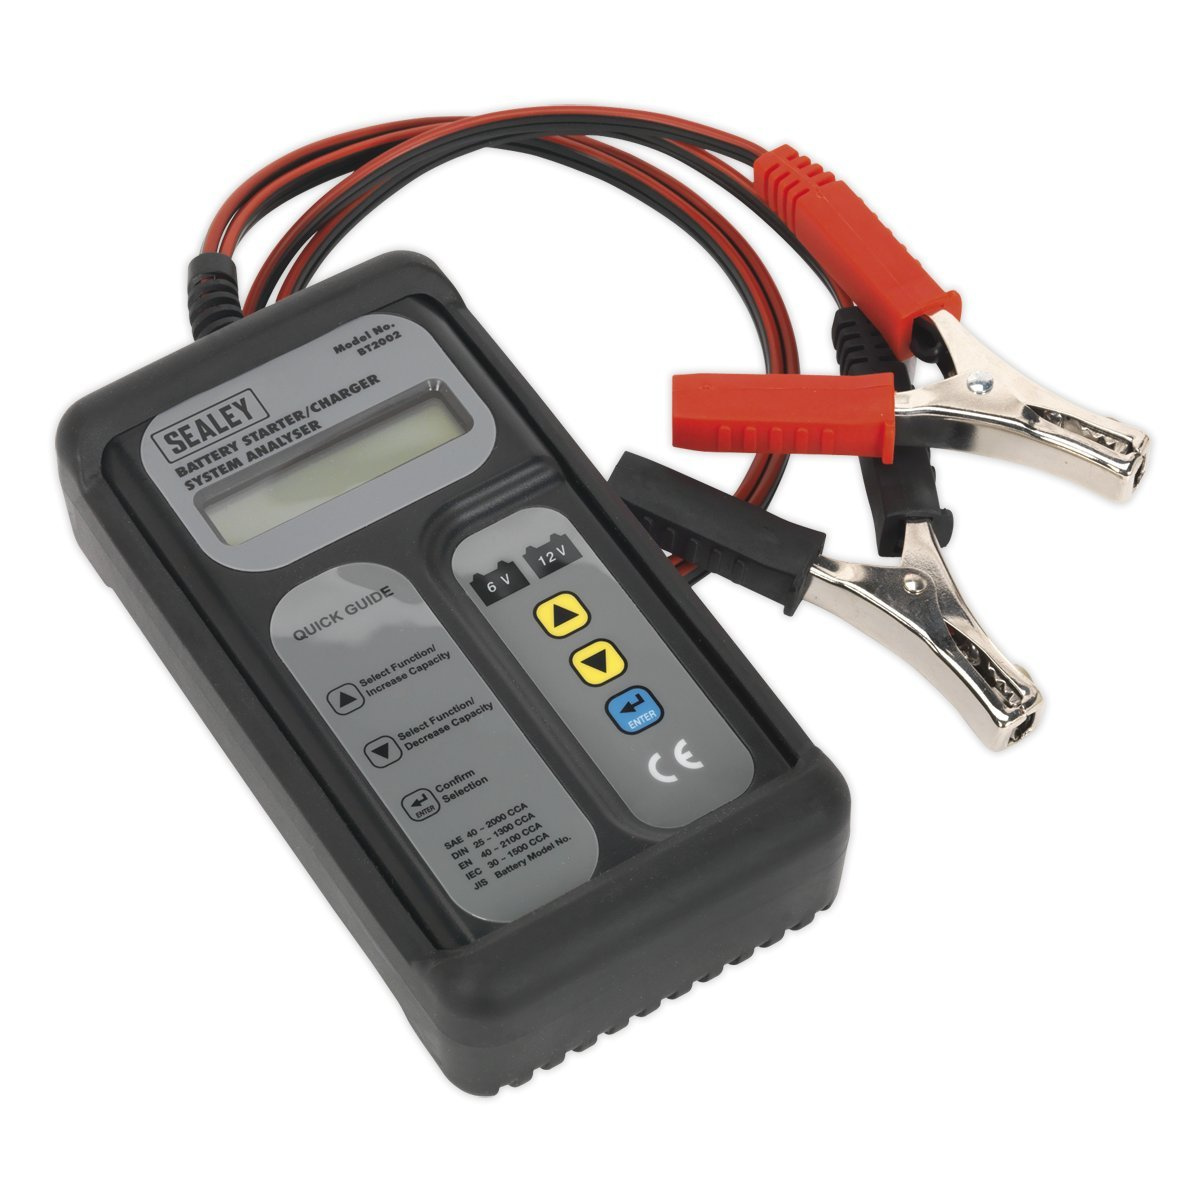 Sealey BT2002 Digital Battery & Alternator Tester 6-12V Battery 6, 12, 24V Alternator SEABT2002